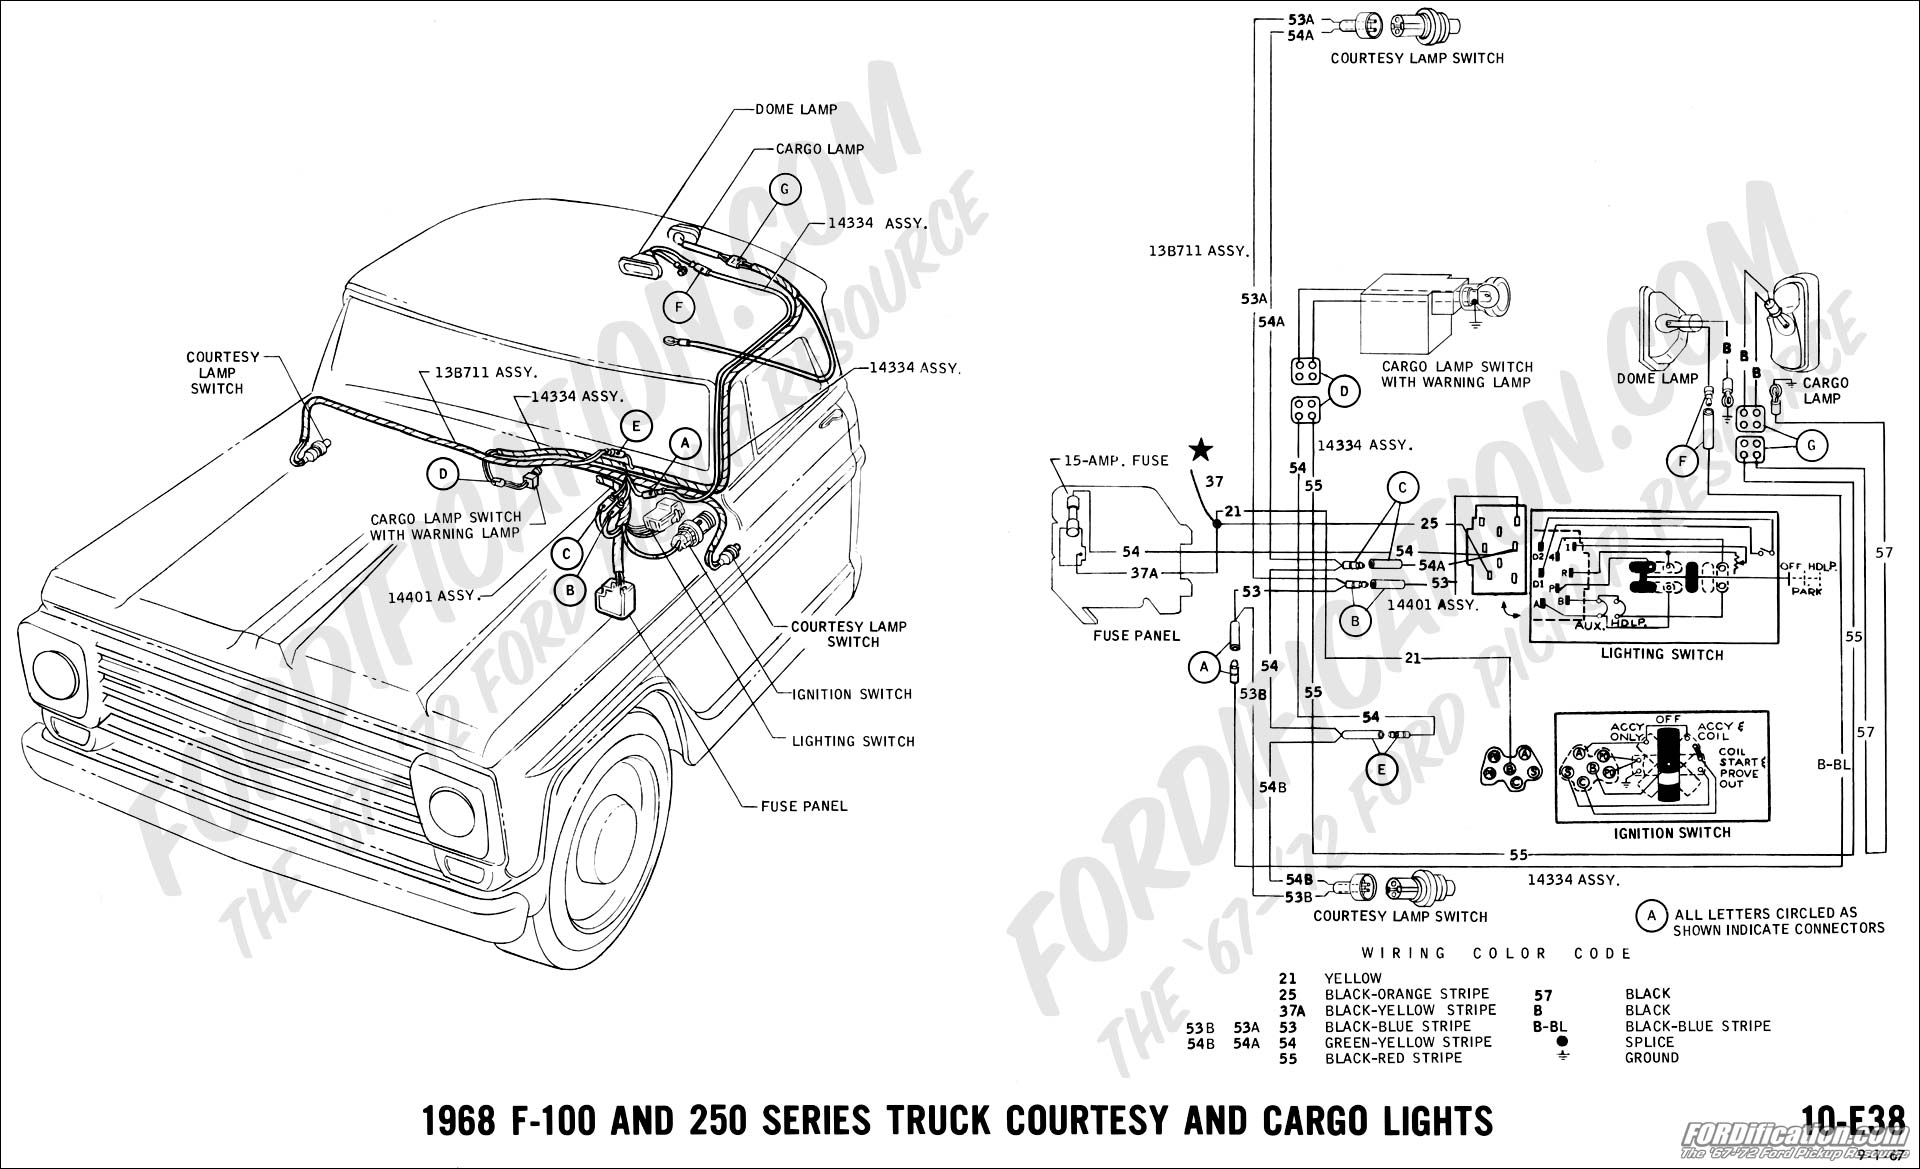 1968 ford bronco tail light wiring diagram wiring diagrams 1968 ford bronco tail light wiring